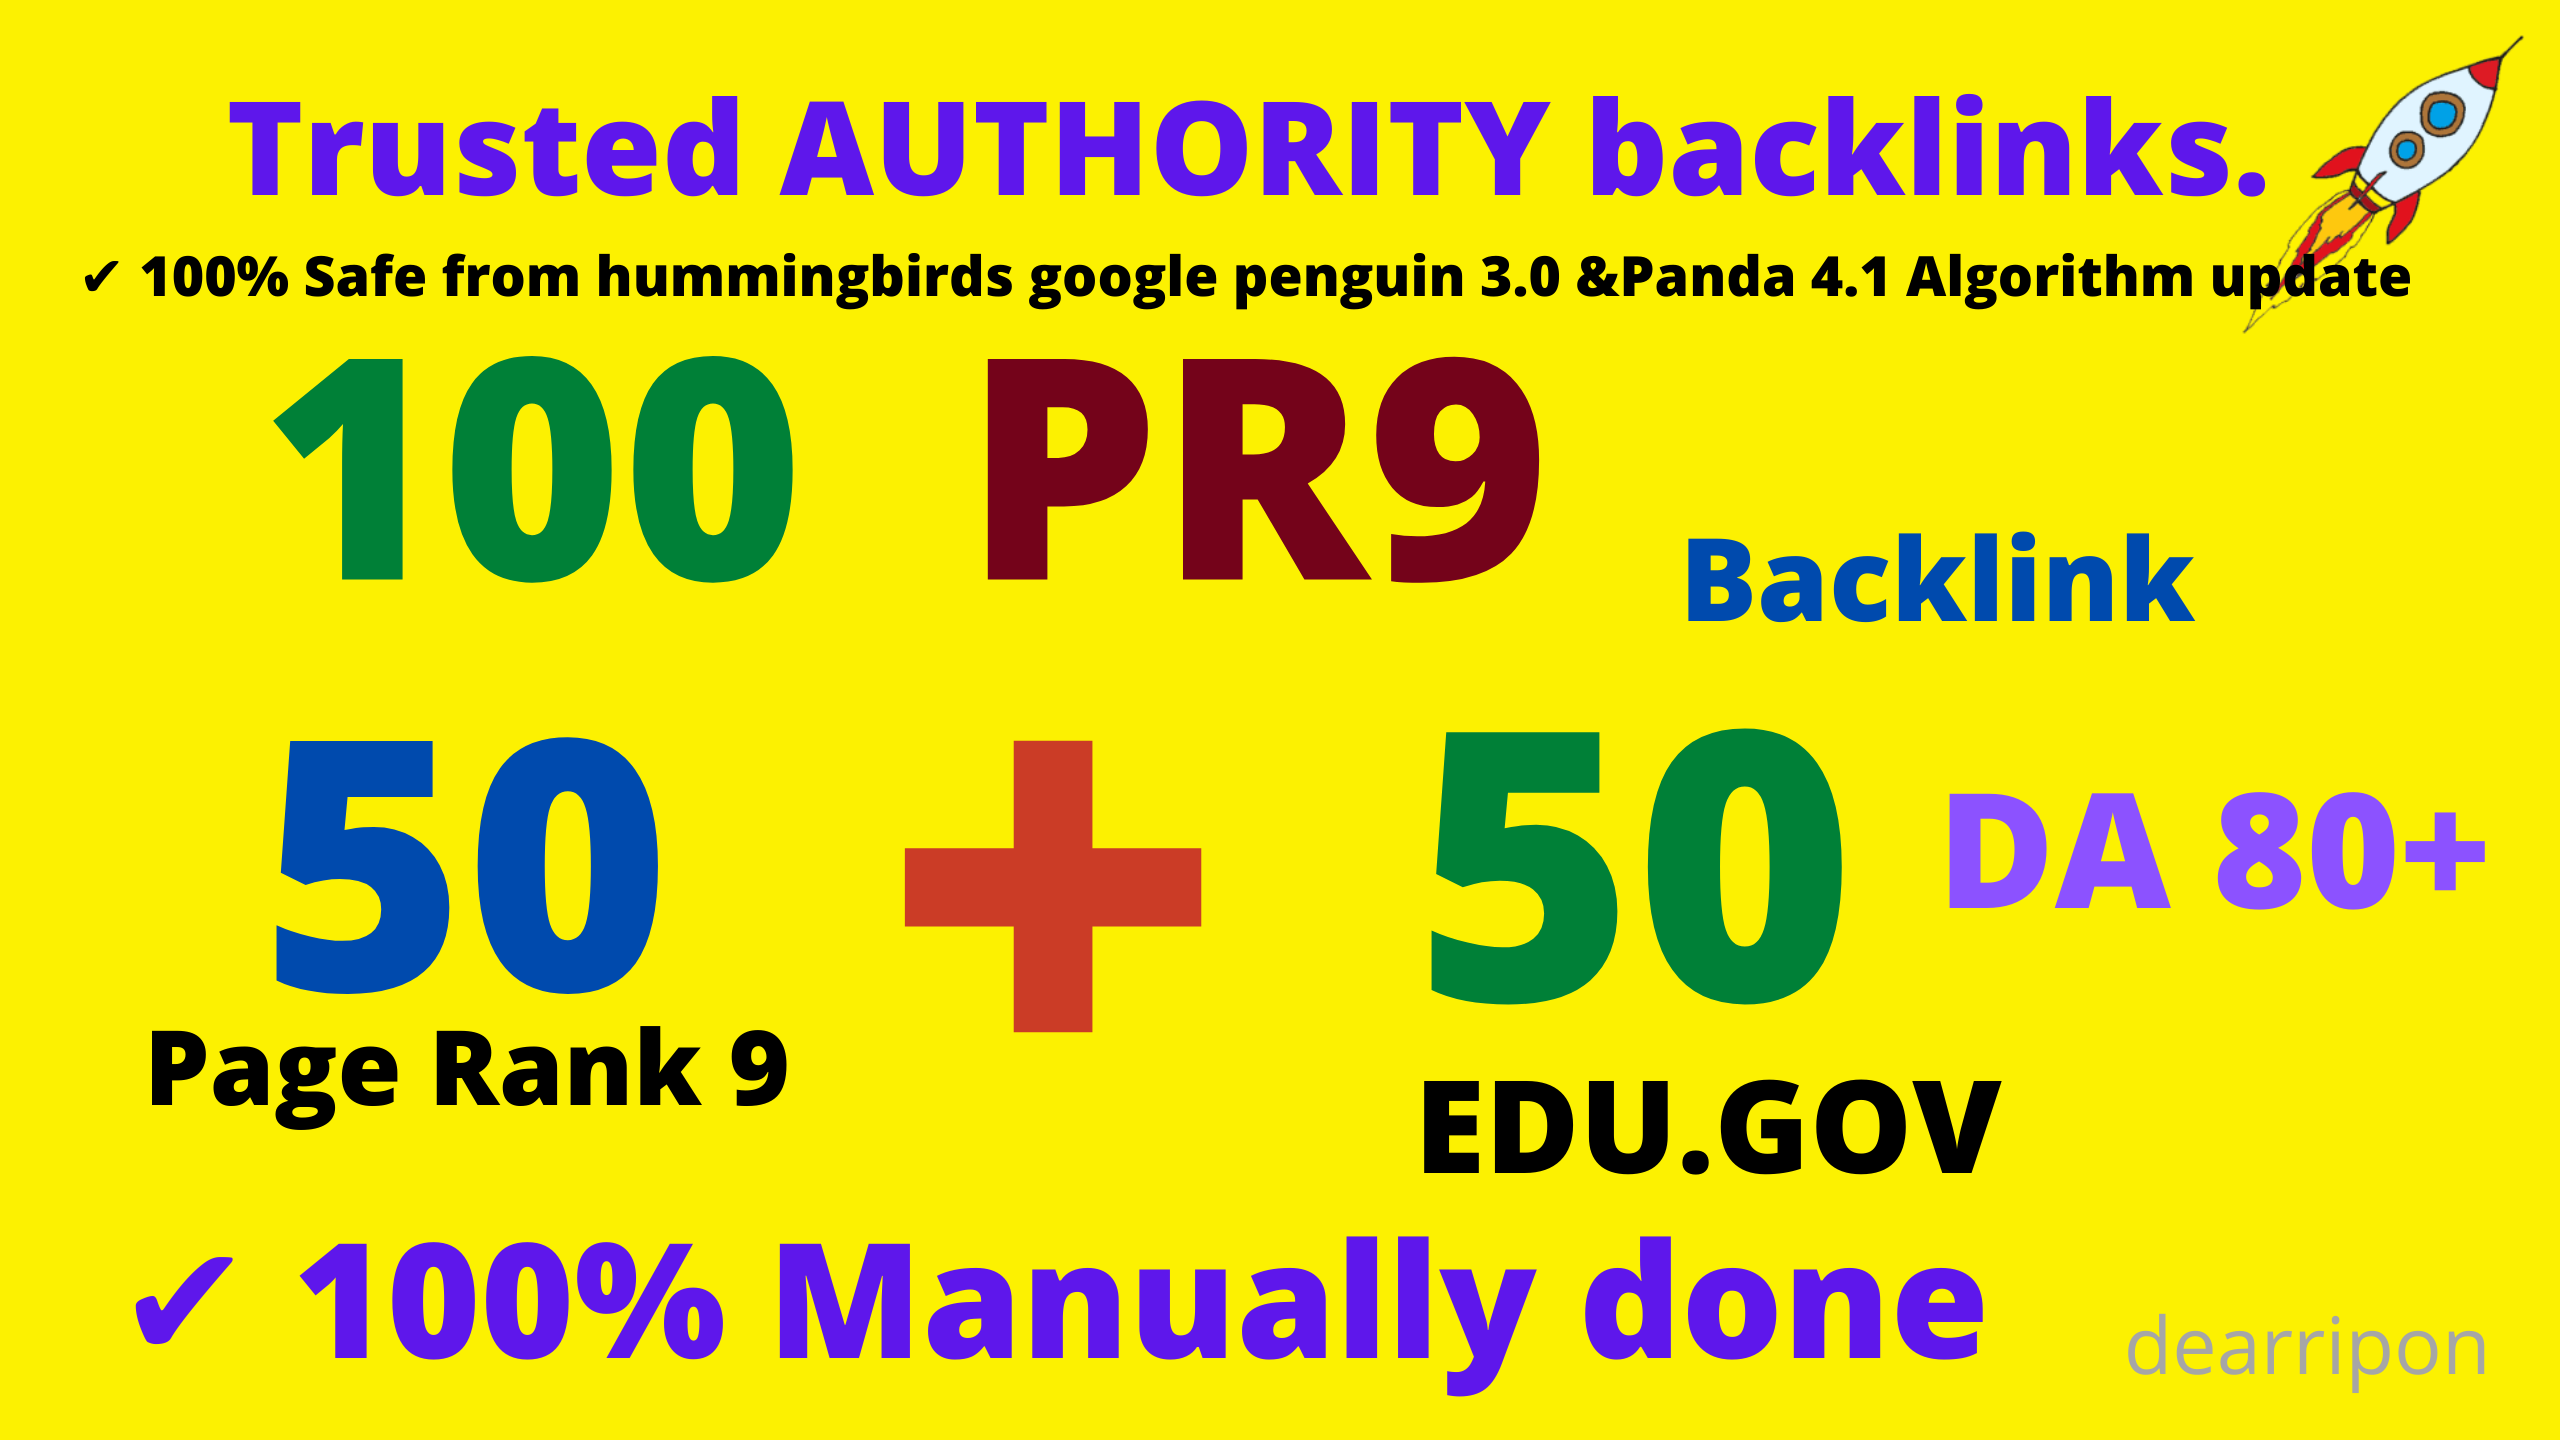 CREATE WEB2.O DA80+100 Backlinks 50 PR9+50 EDU High Quality SEO Permanent Links